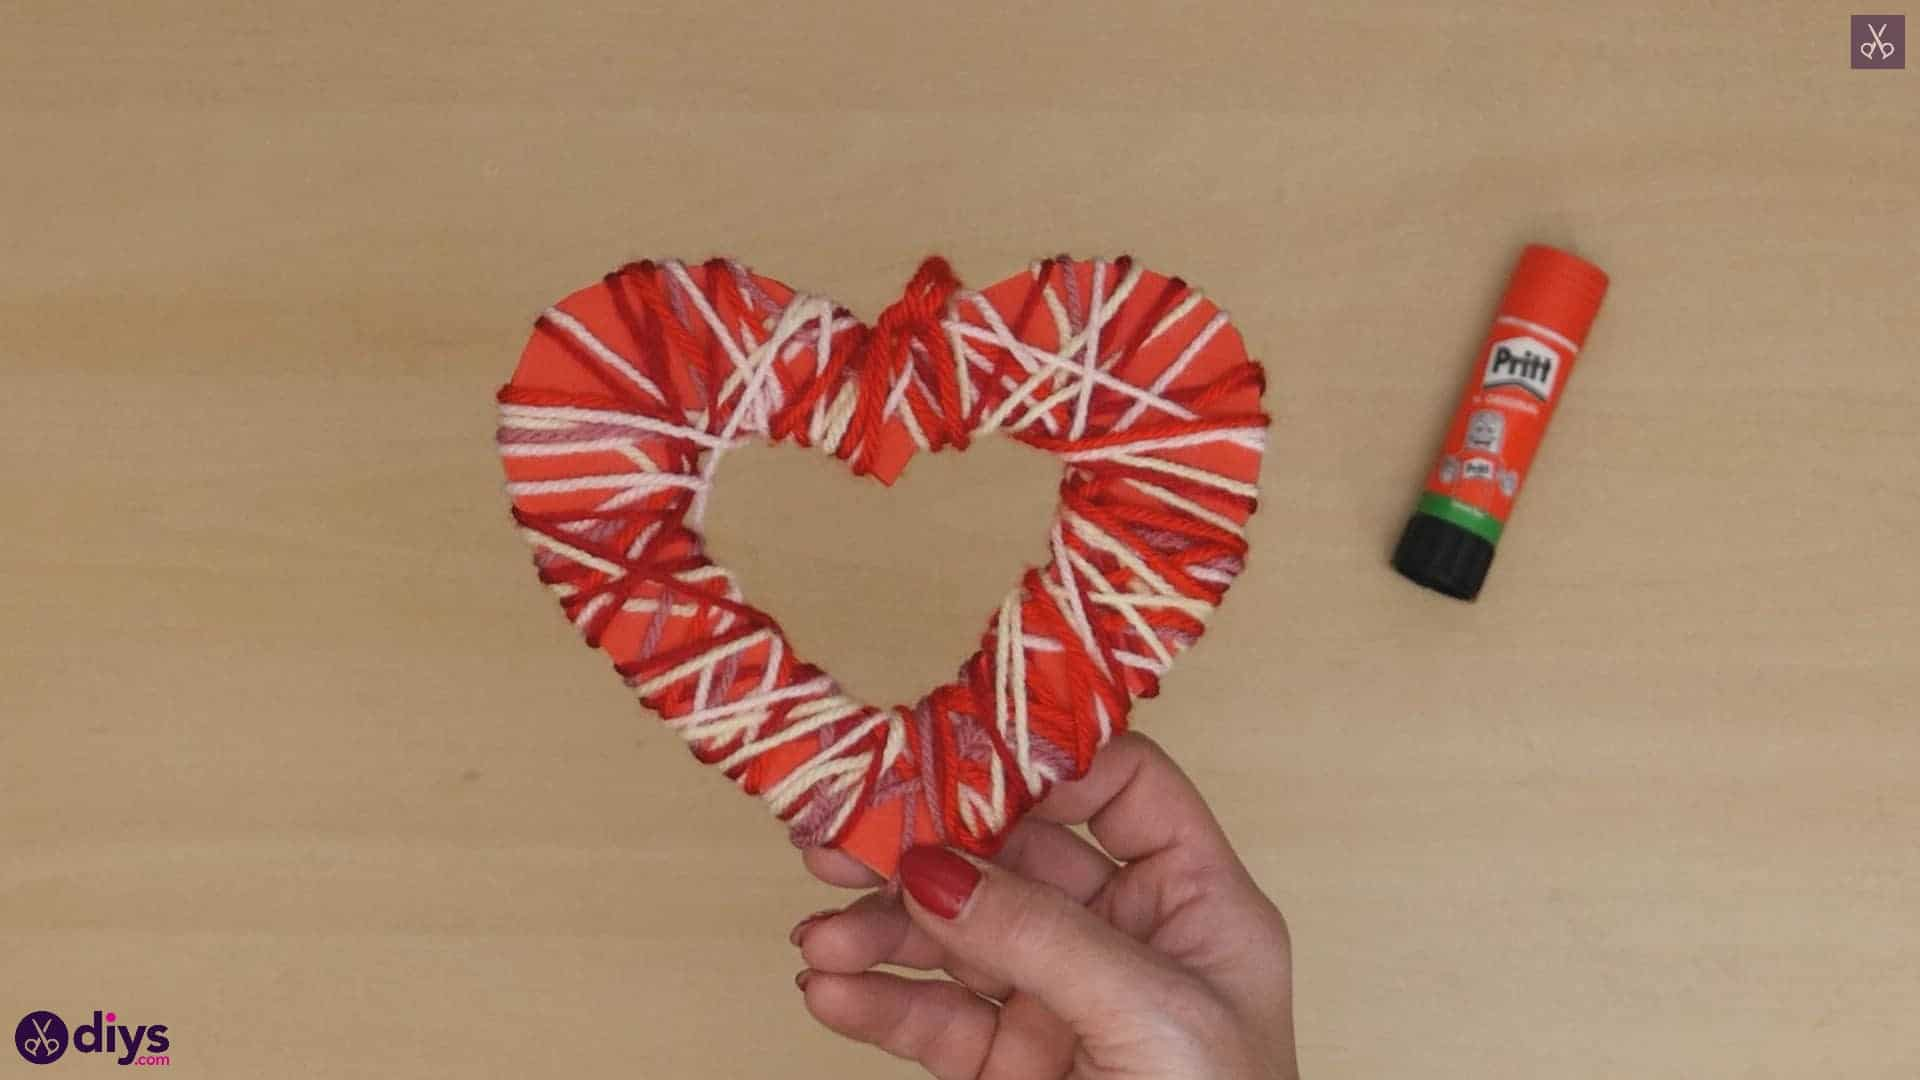 Diy yarn wrapped paper heart step 7d